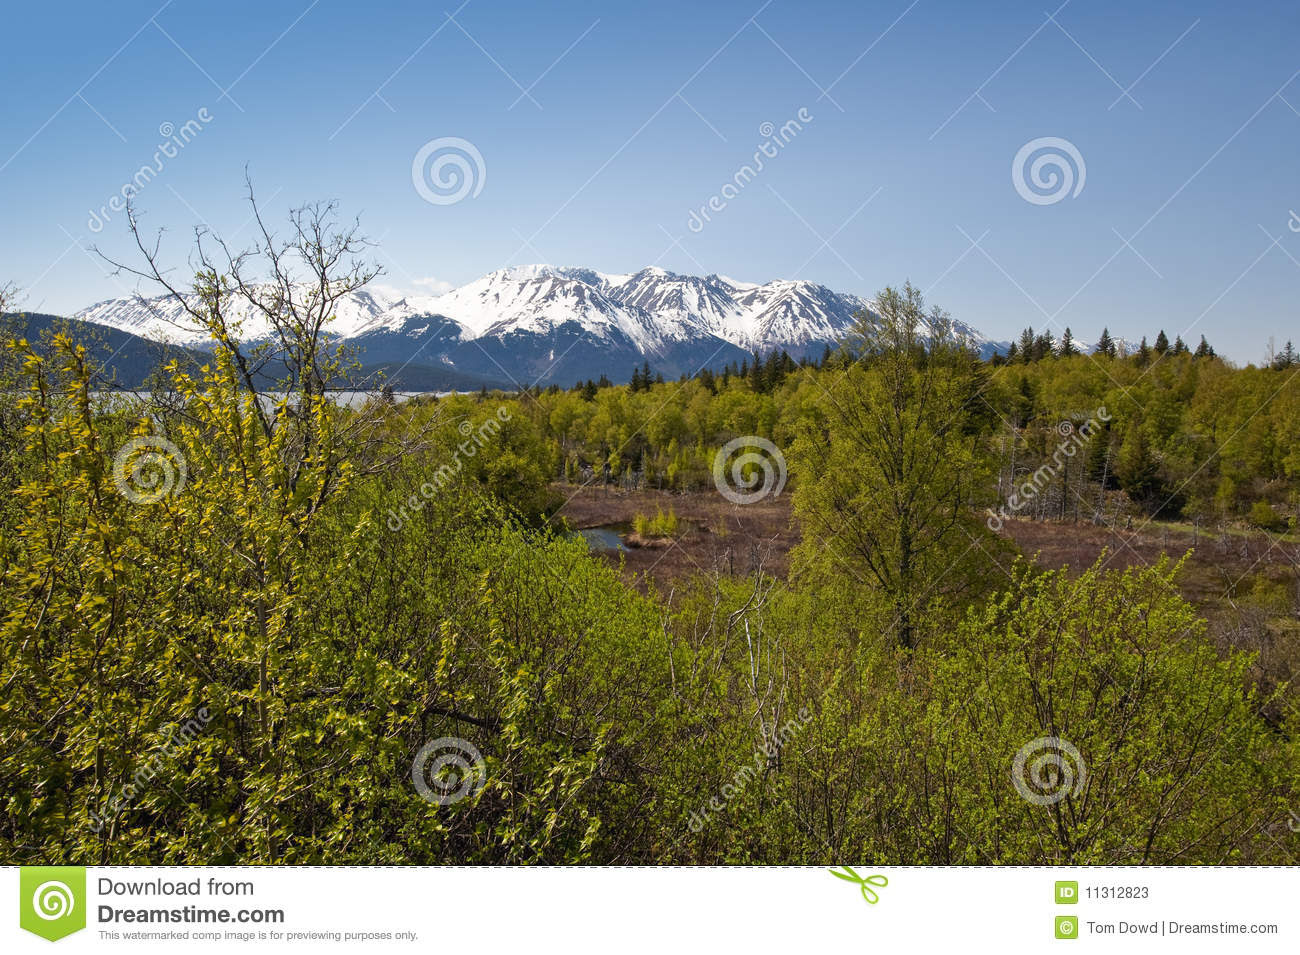 Scenic Alaskan wilderness and mountains near Turnagain Arm Fjord.